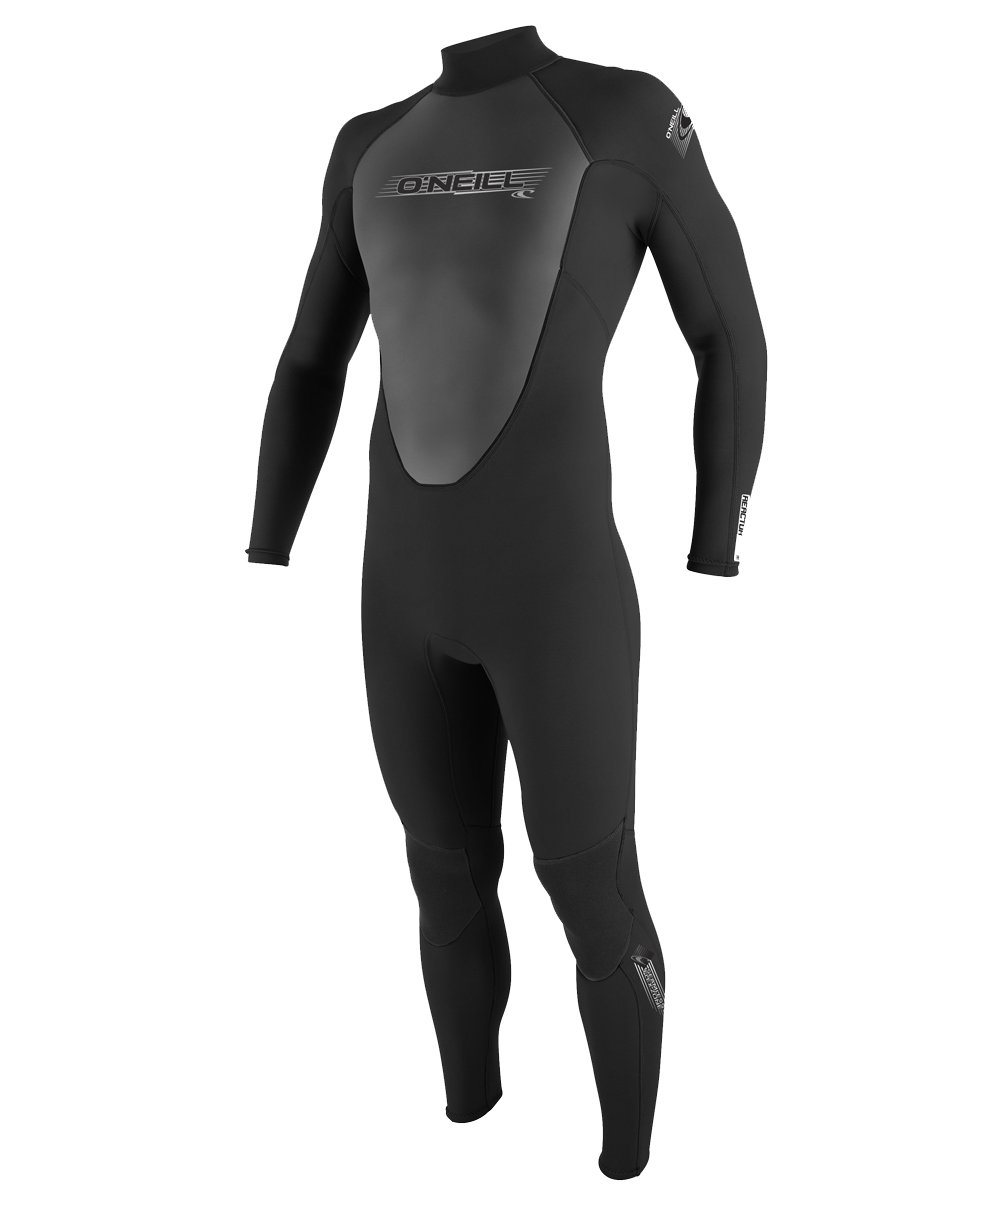 O'Neill   Mens 3/2mm Reactor  Back Zip Full Wetsuit, Black, XXX-Large by O'Neill Wetsuits